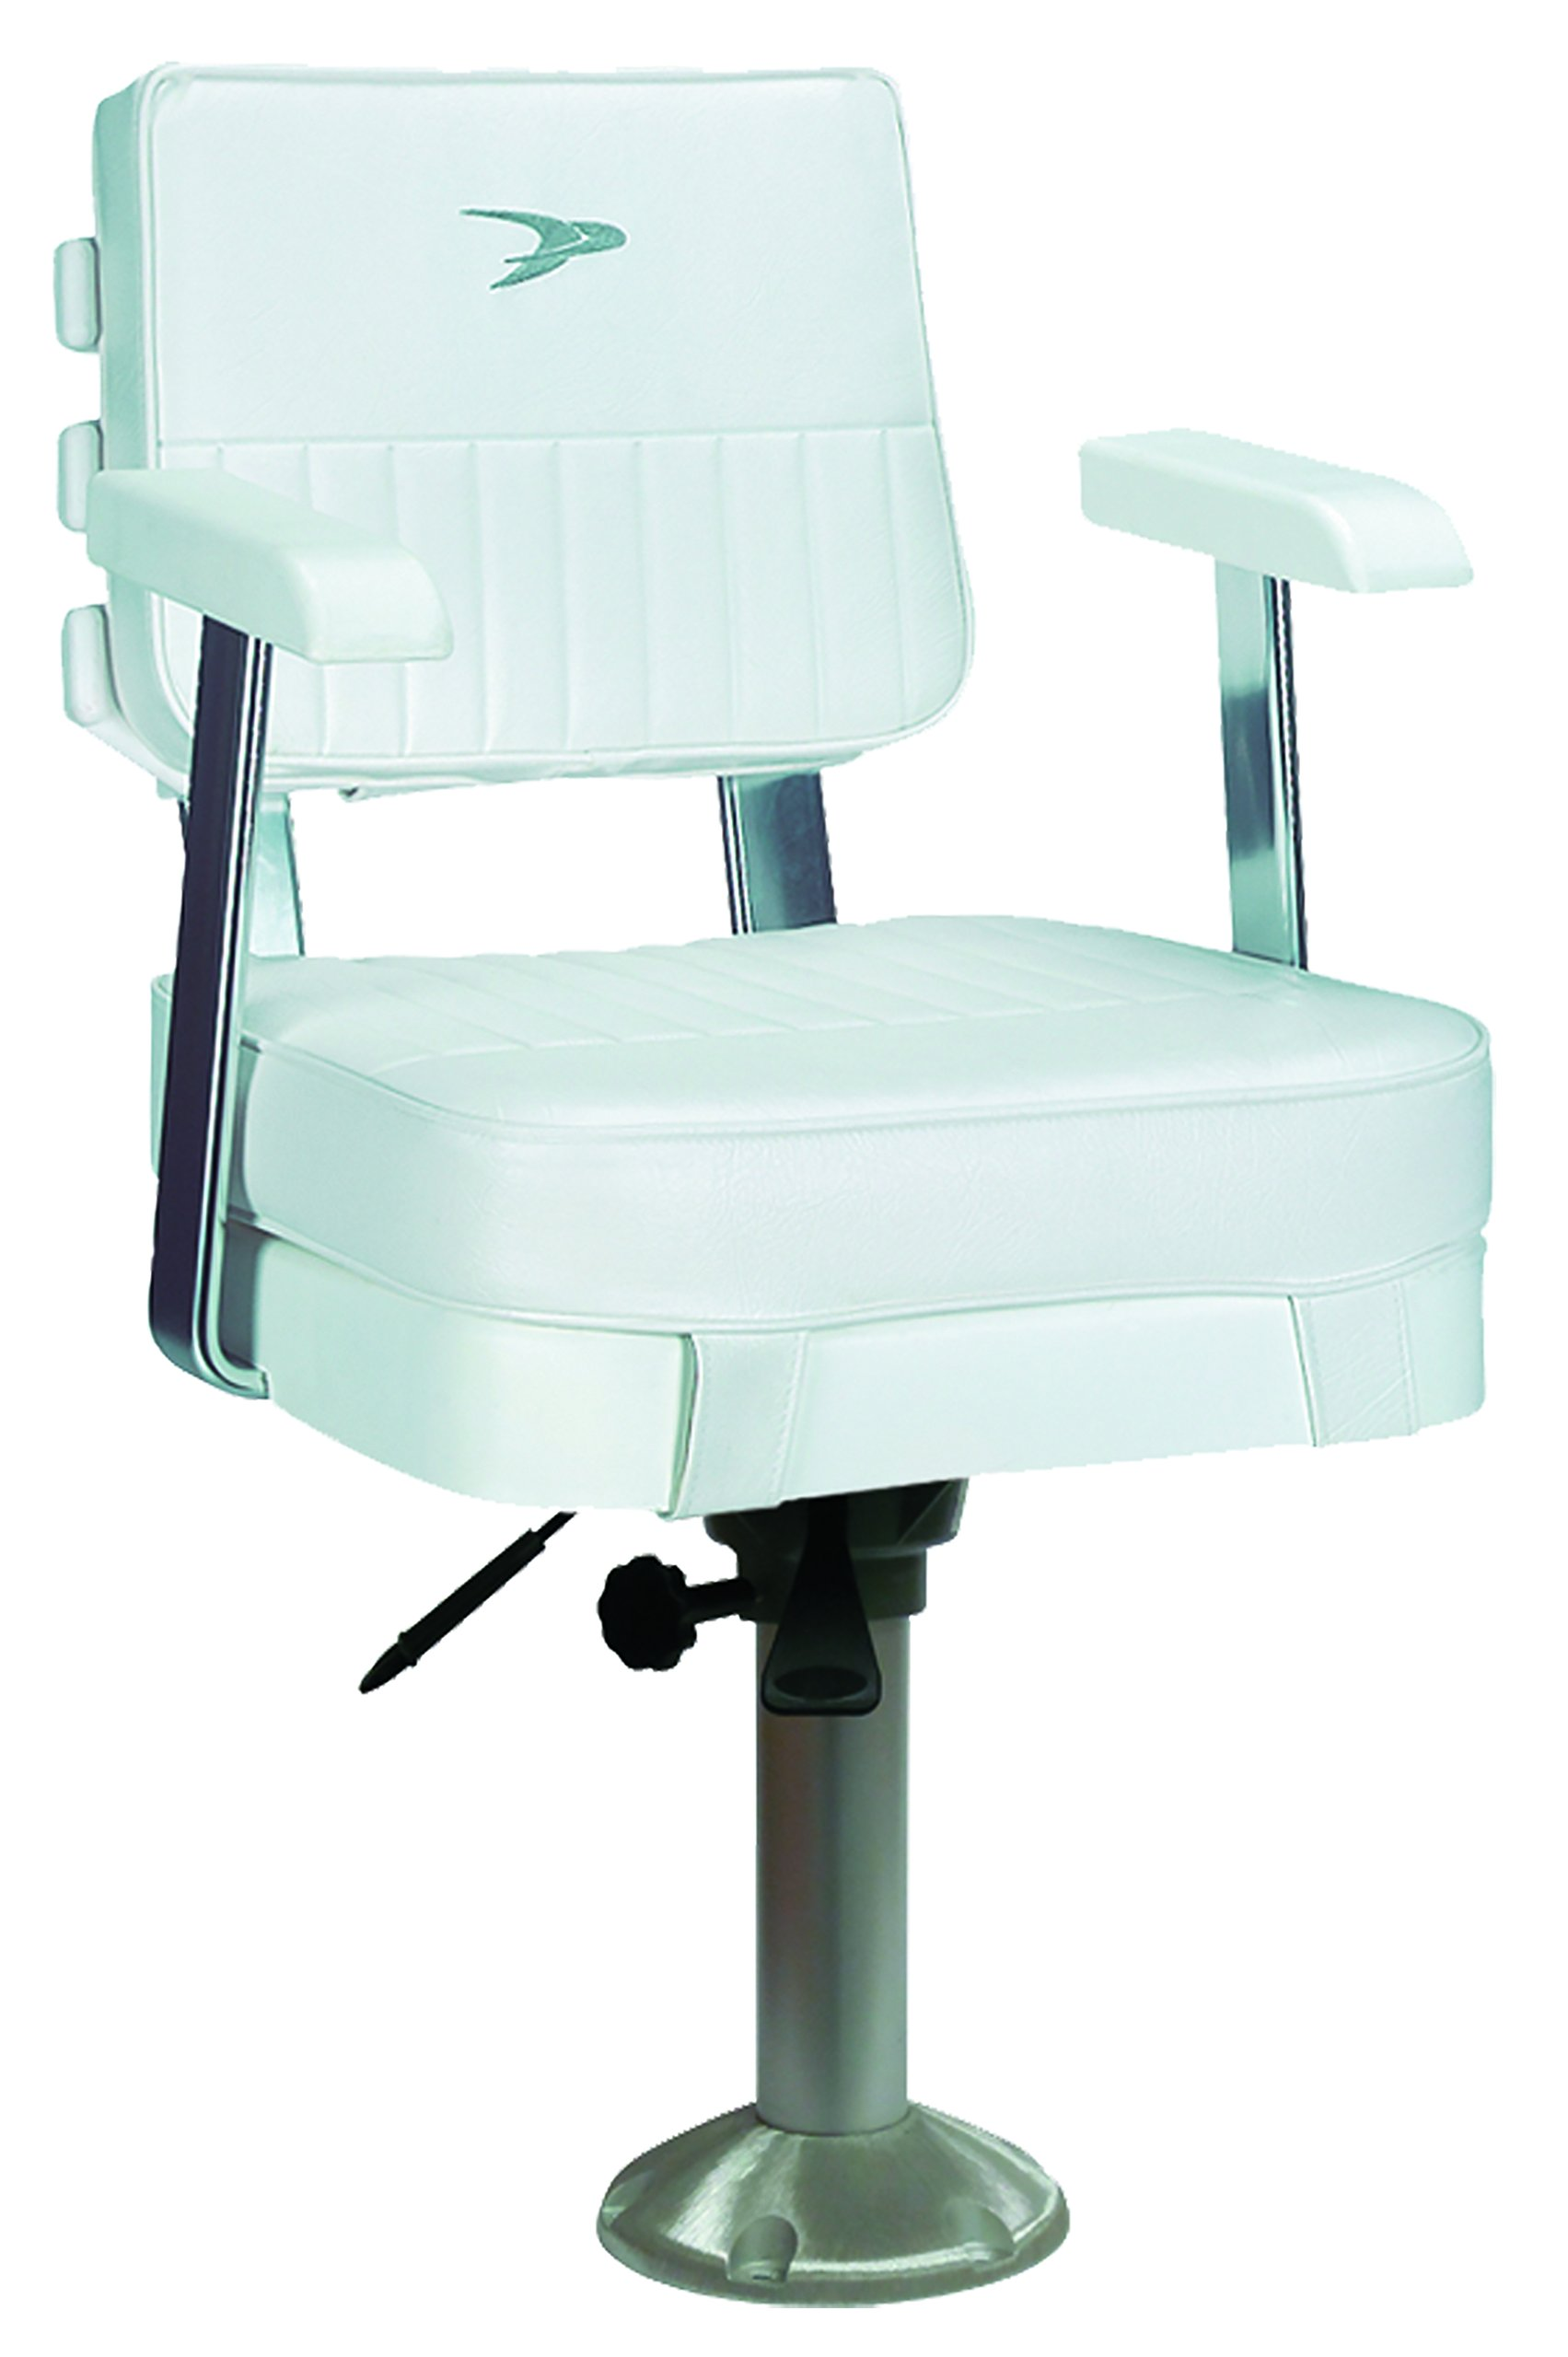 Wise Ladder Back Helm Chair with Arm Rests including 15-Inch Fixed Pedestal and Slide (White) by Wise